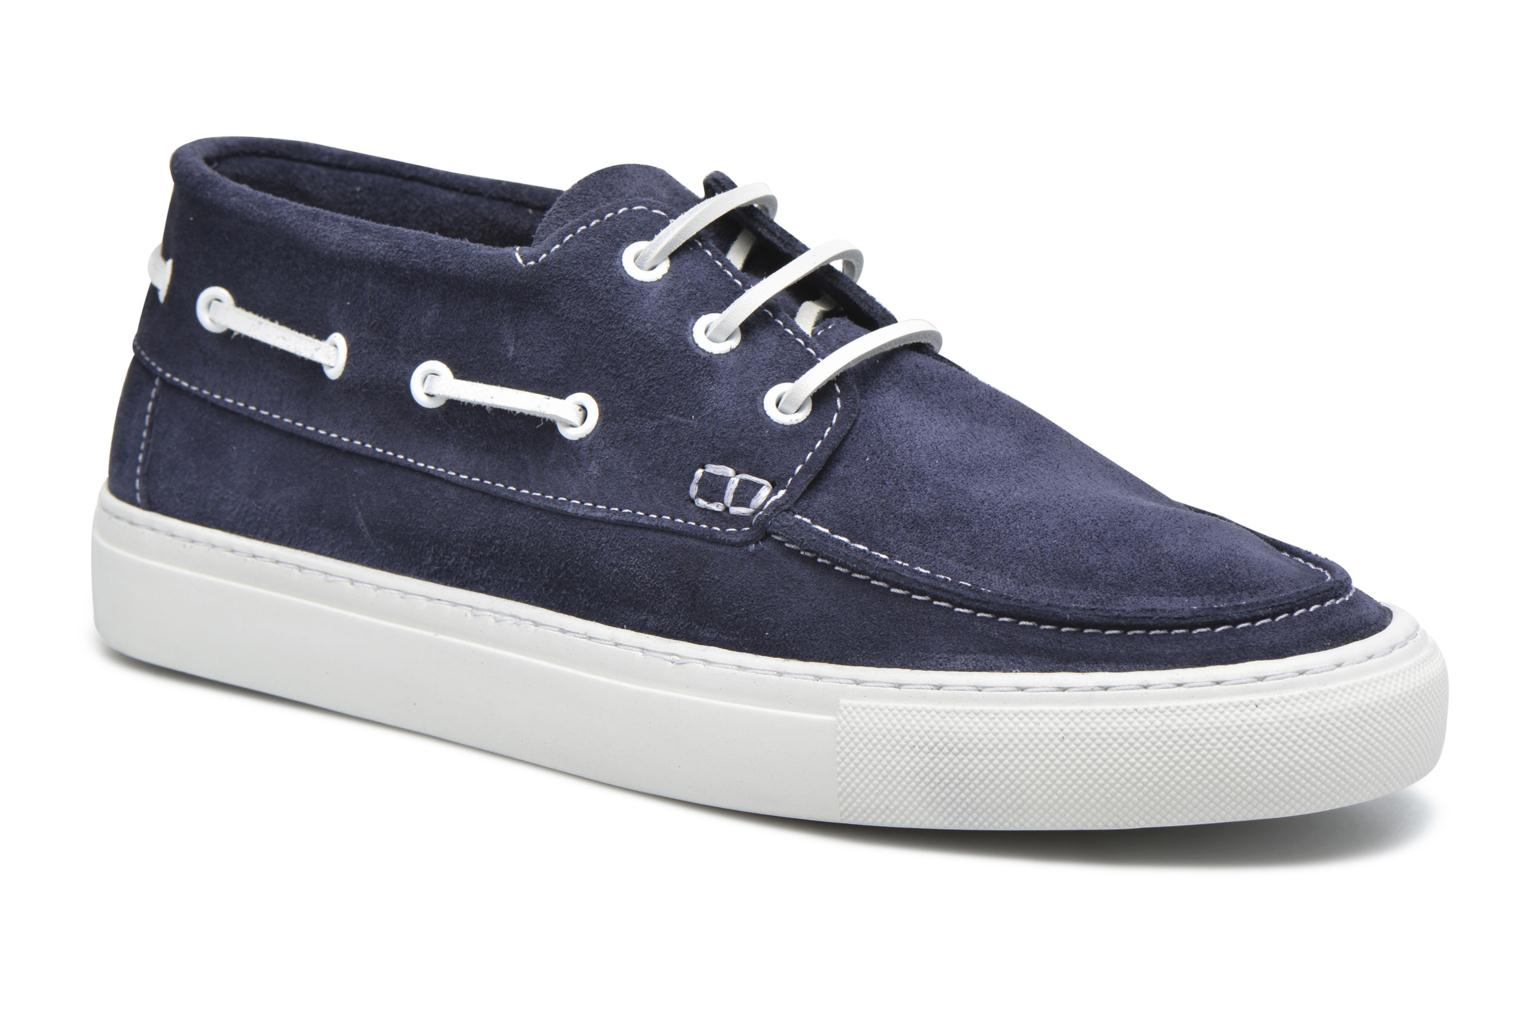 August Hightop Boat Shoe Dark Navy